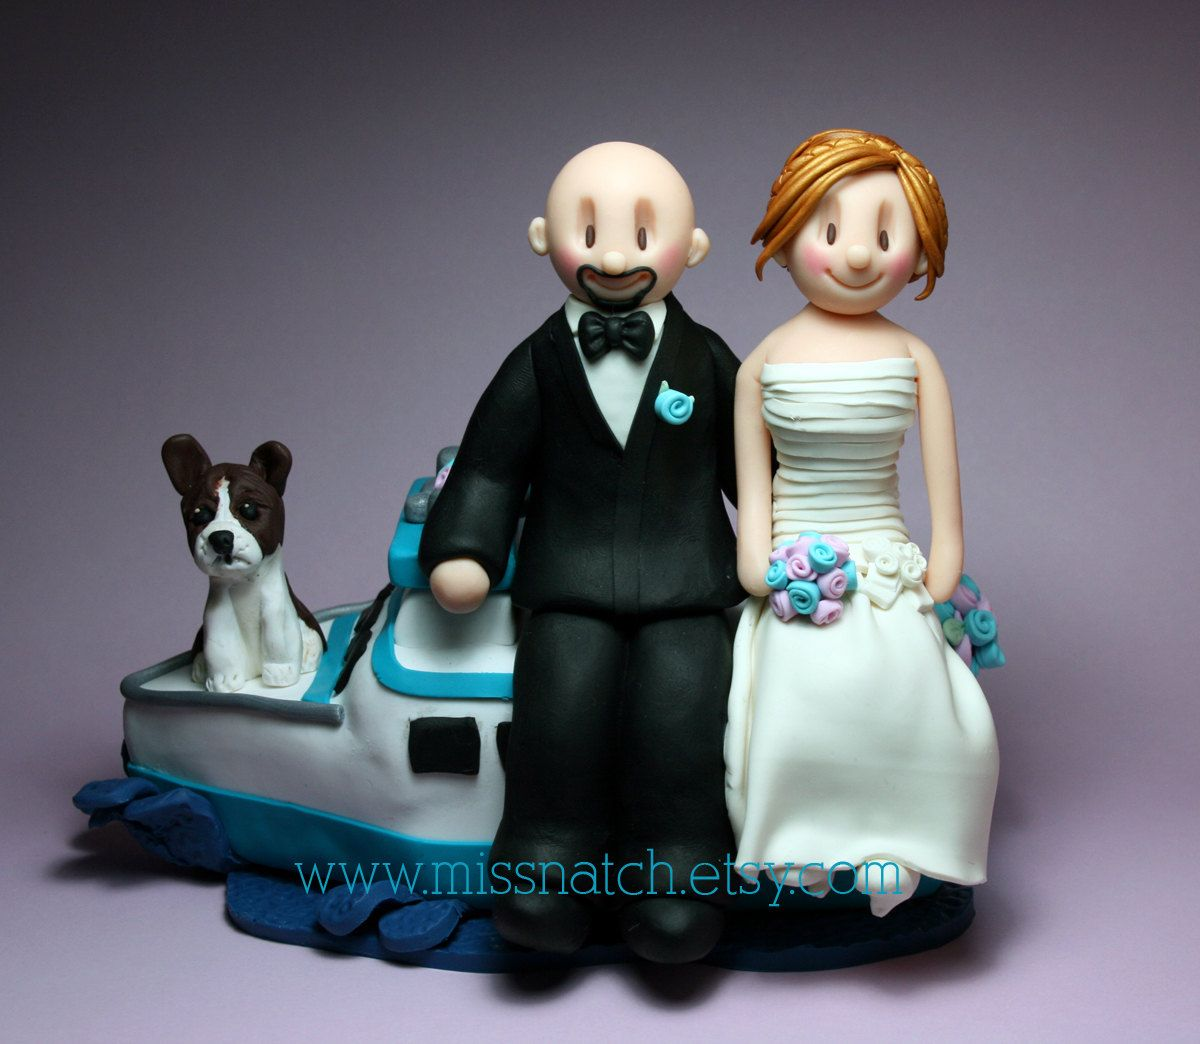 Boat Yacht Turquoise Blush Pink Wedding Cake Topper by www.missnatch.etsy.com